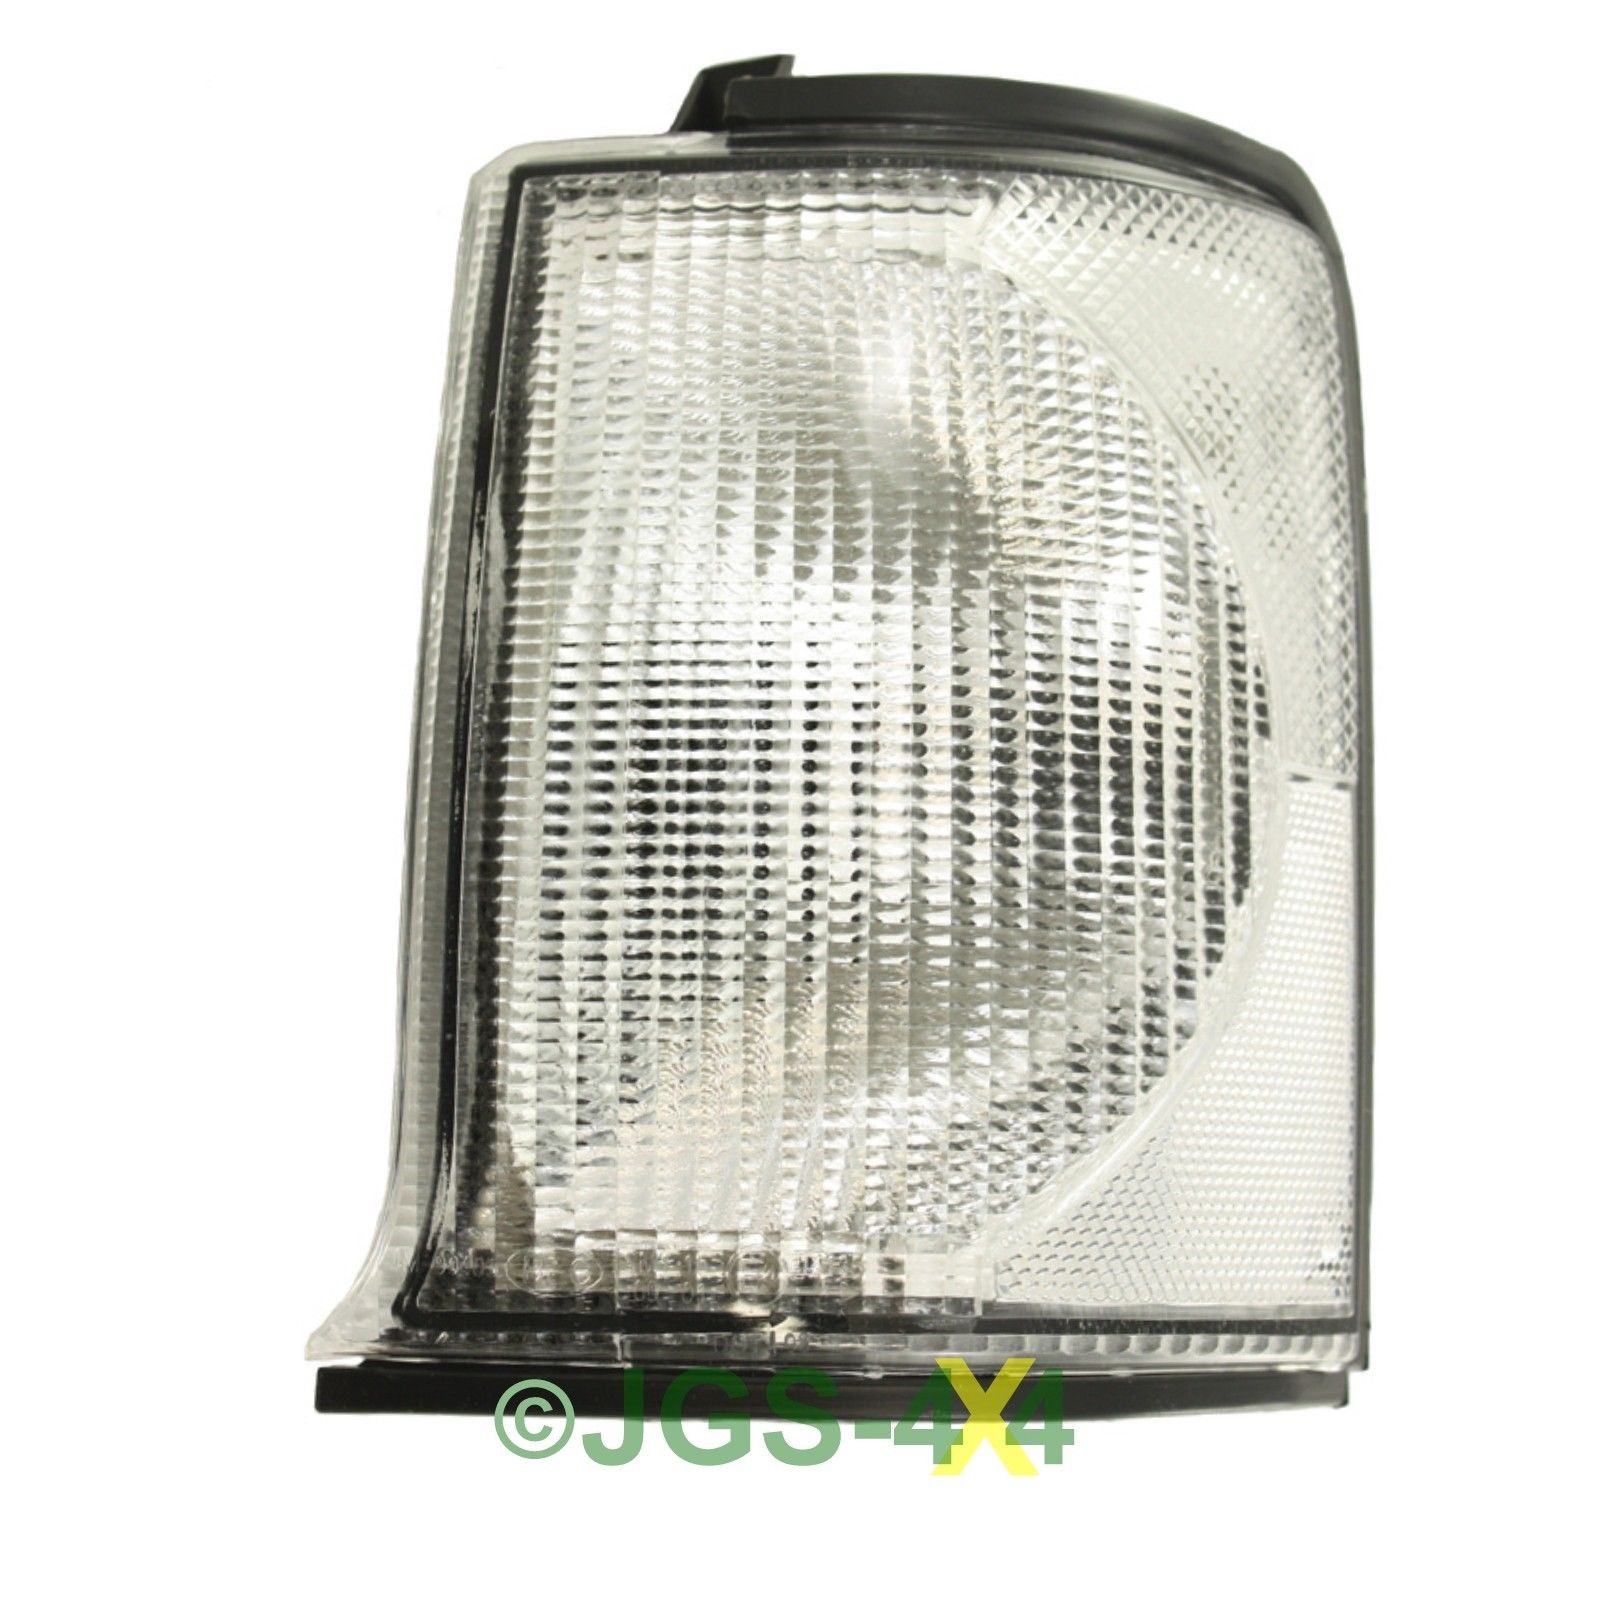 Pair Of Clear Front Indicator Lights For Land Rover: Land Rover Discovery 2 Front L/H N/S Left Clear Indicator